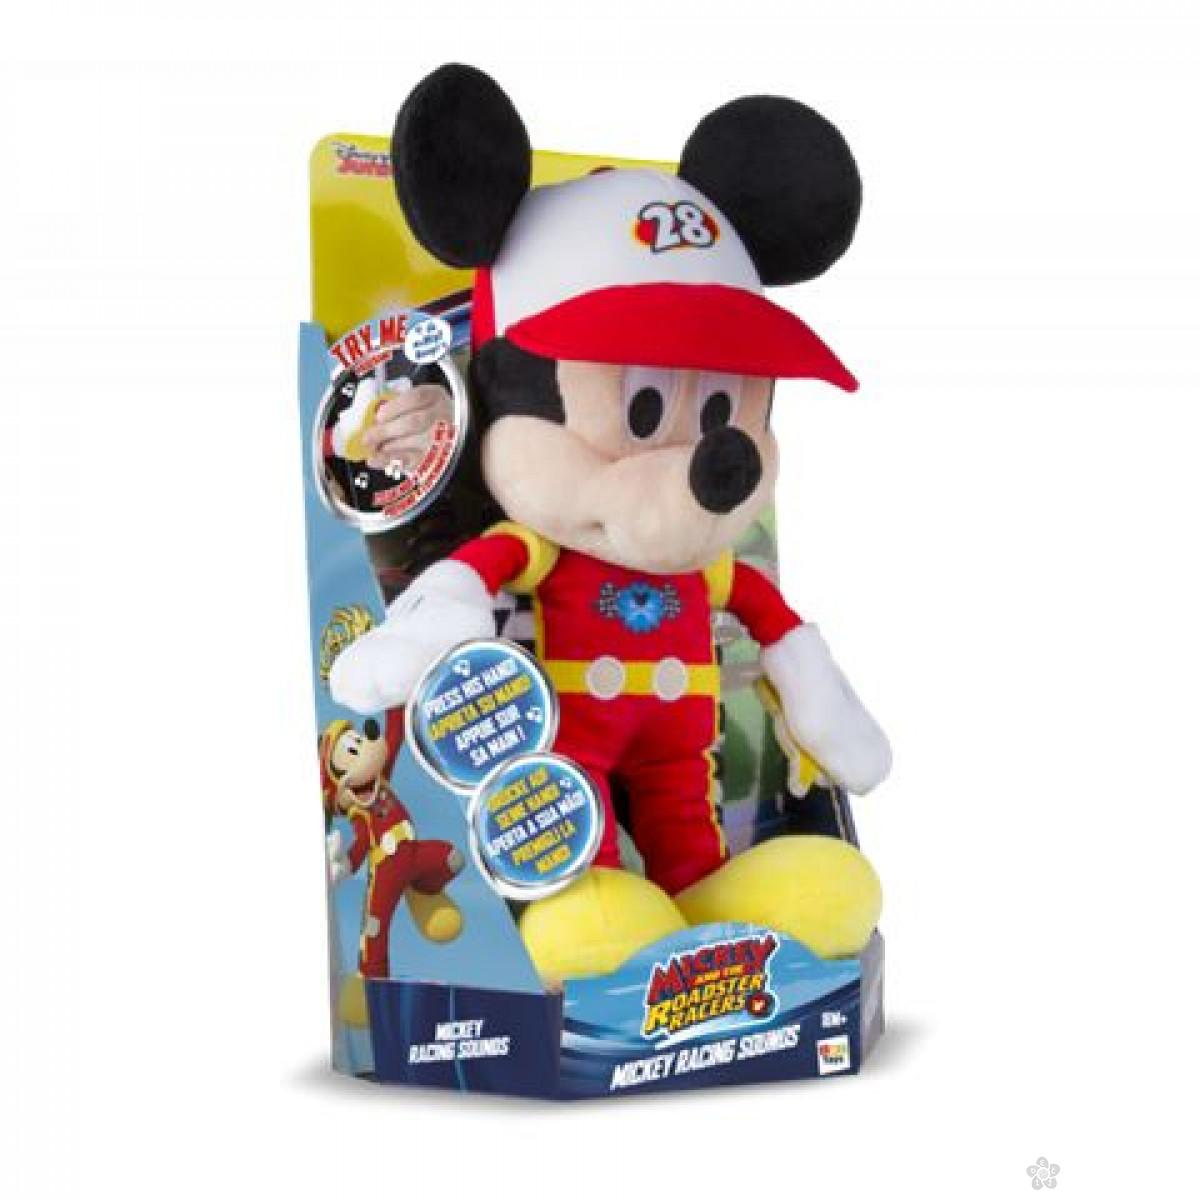 Plišani Mickey racing sounds 0127334